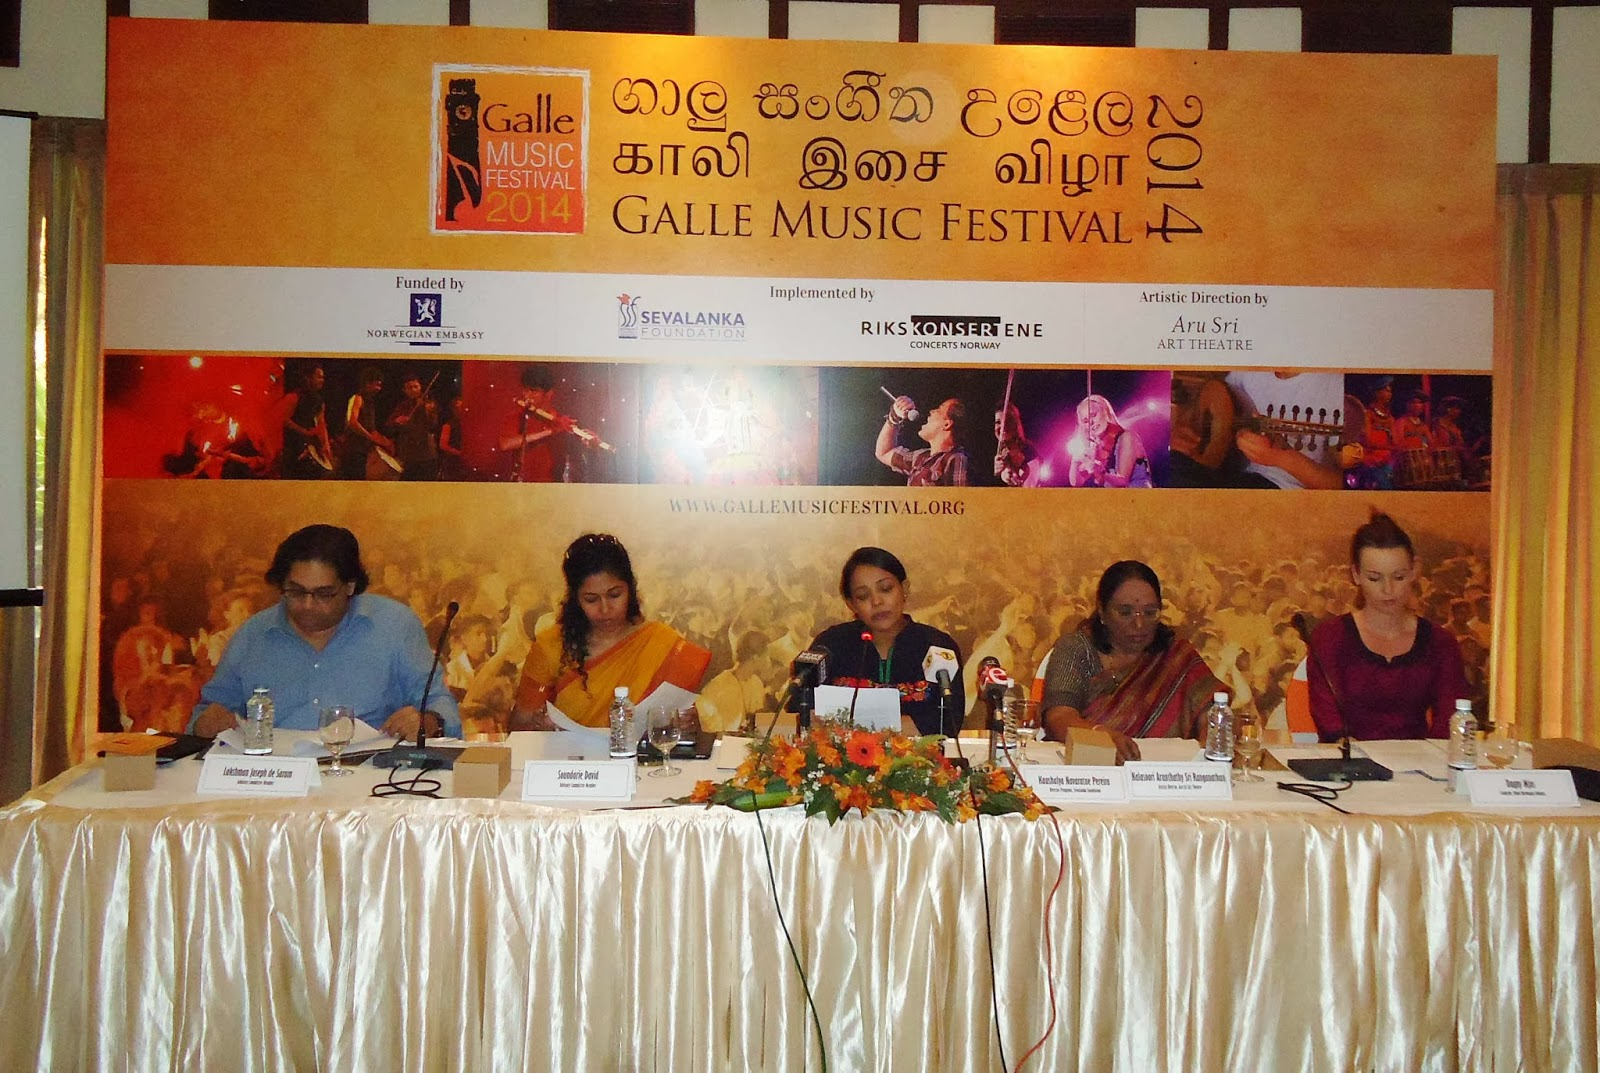 The Galle Music Festival 15th of March 2014